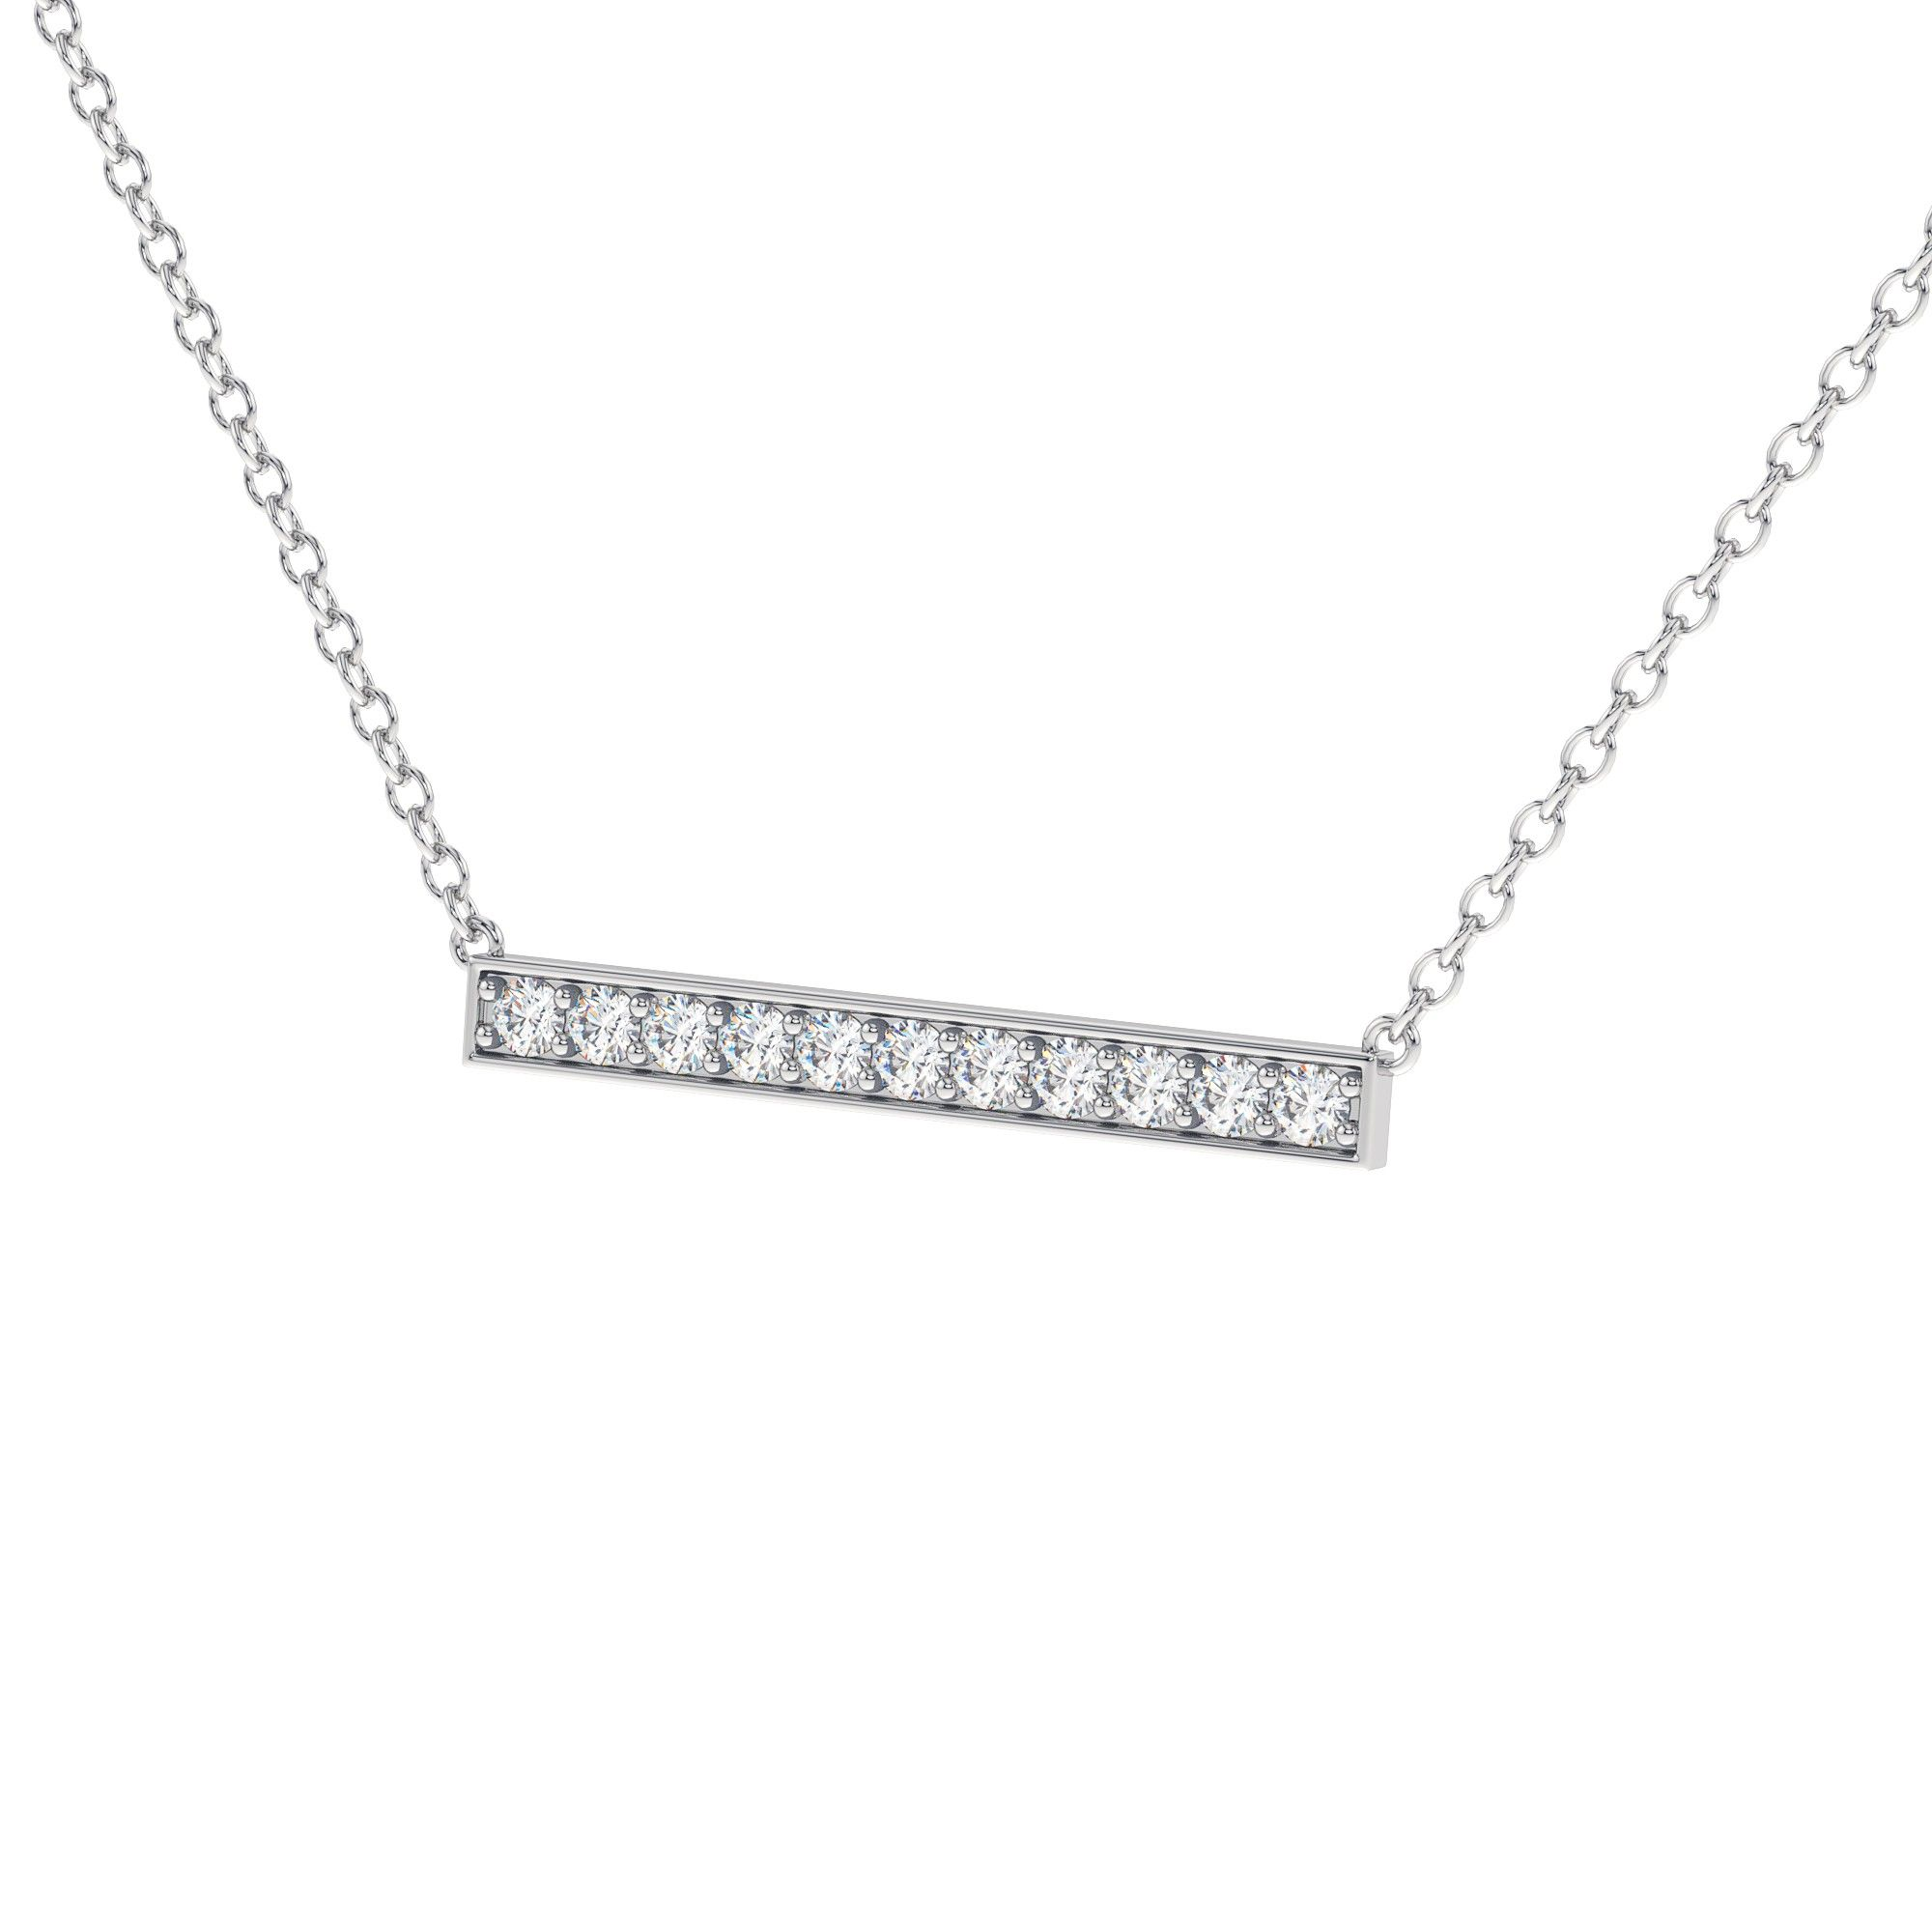 W Linear Bar Diamond Necklace Set In White Gold With 11 Shared G H I Clarity Si Color Diamonds The Pendant Is Suspended On A Lovely Cable Chain Making